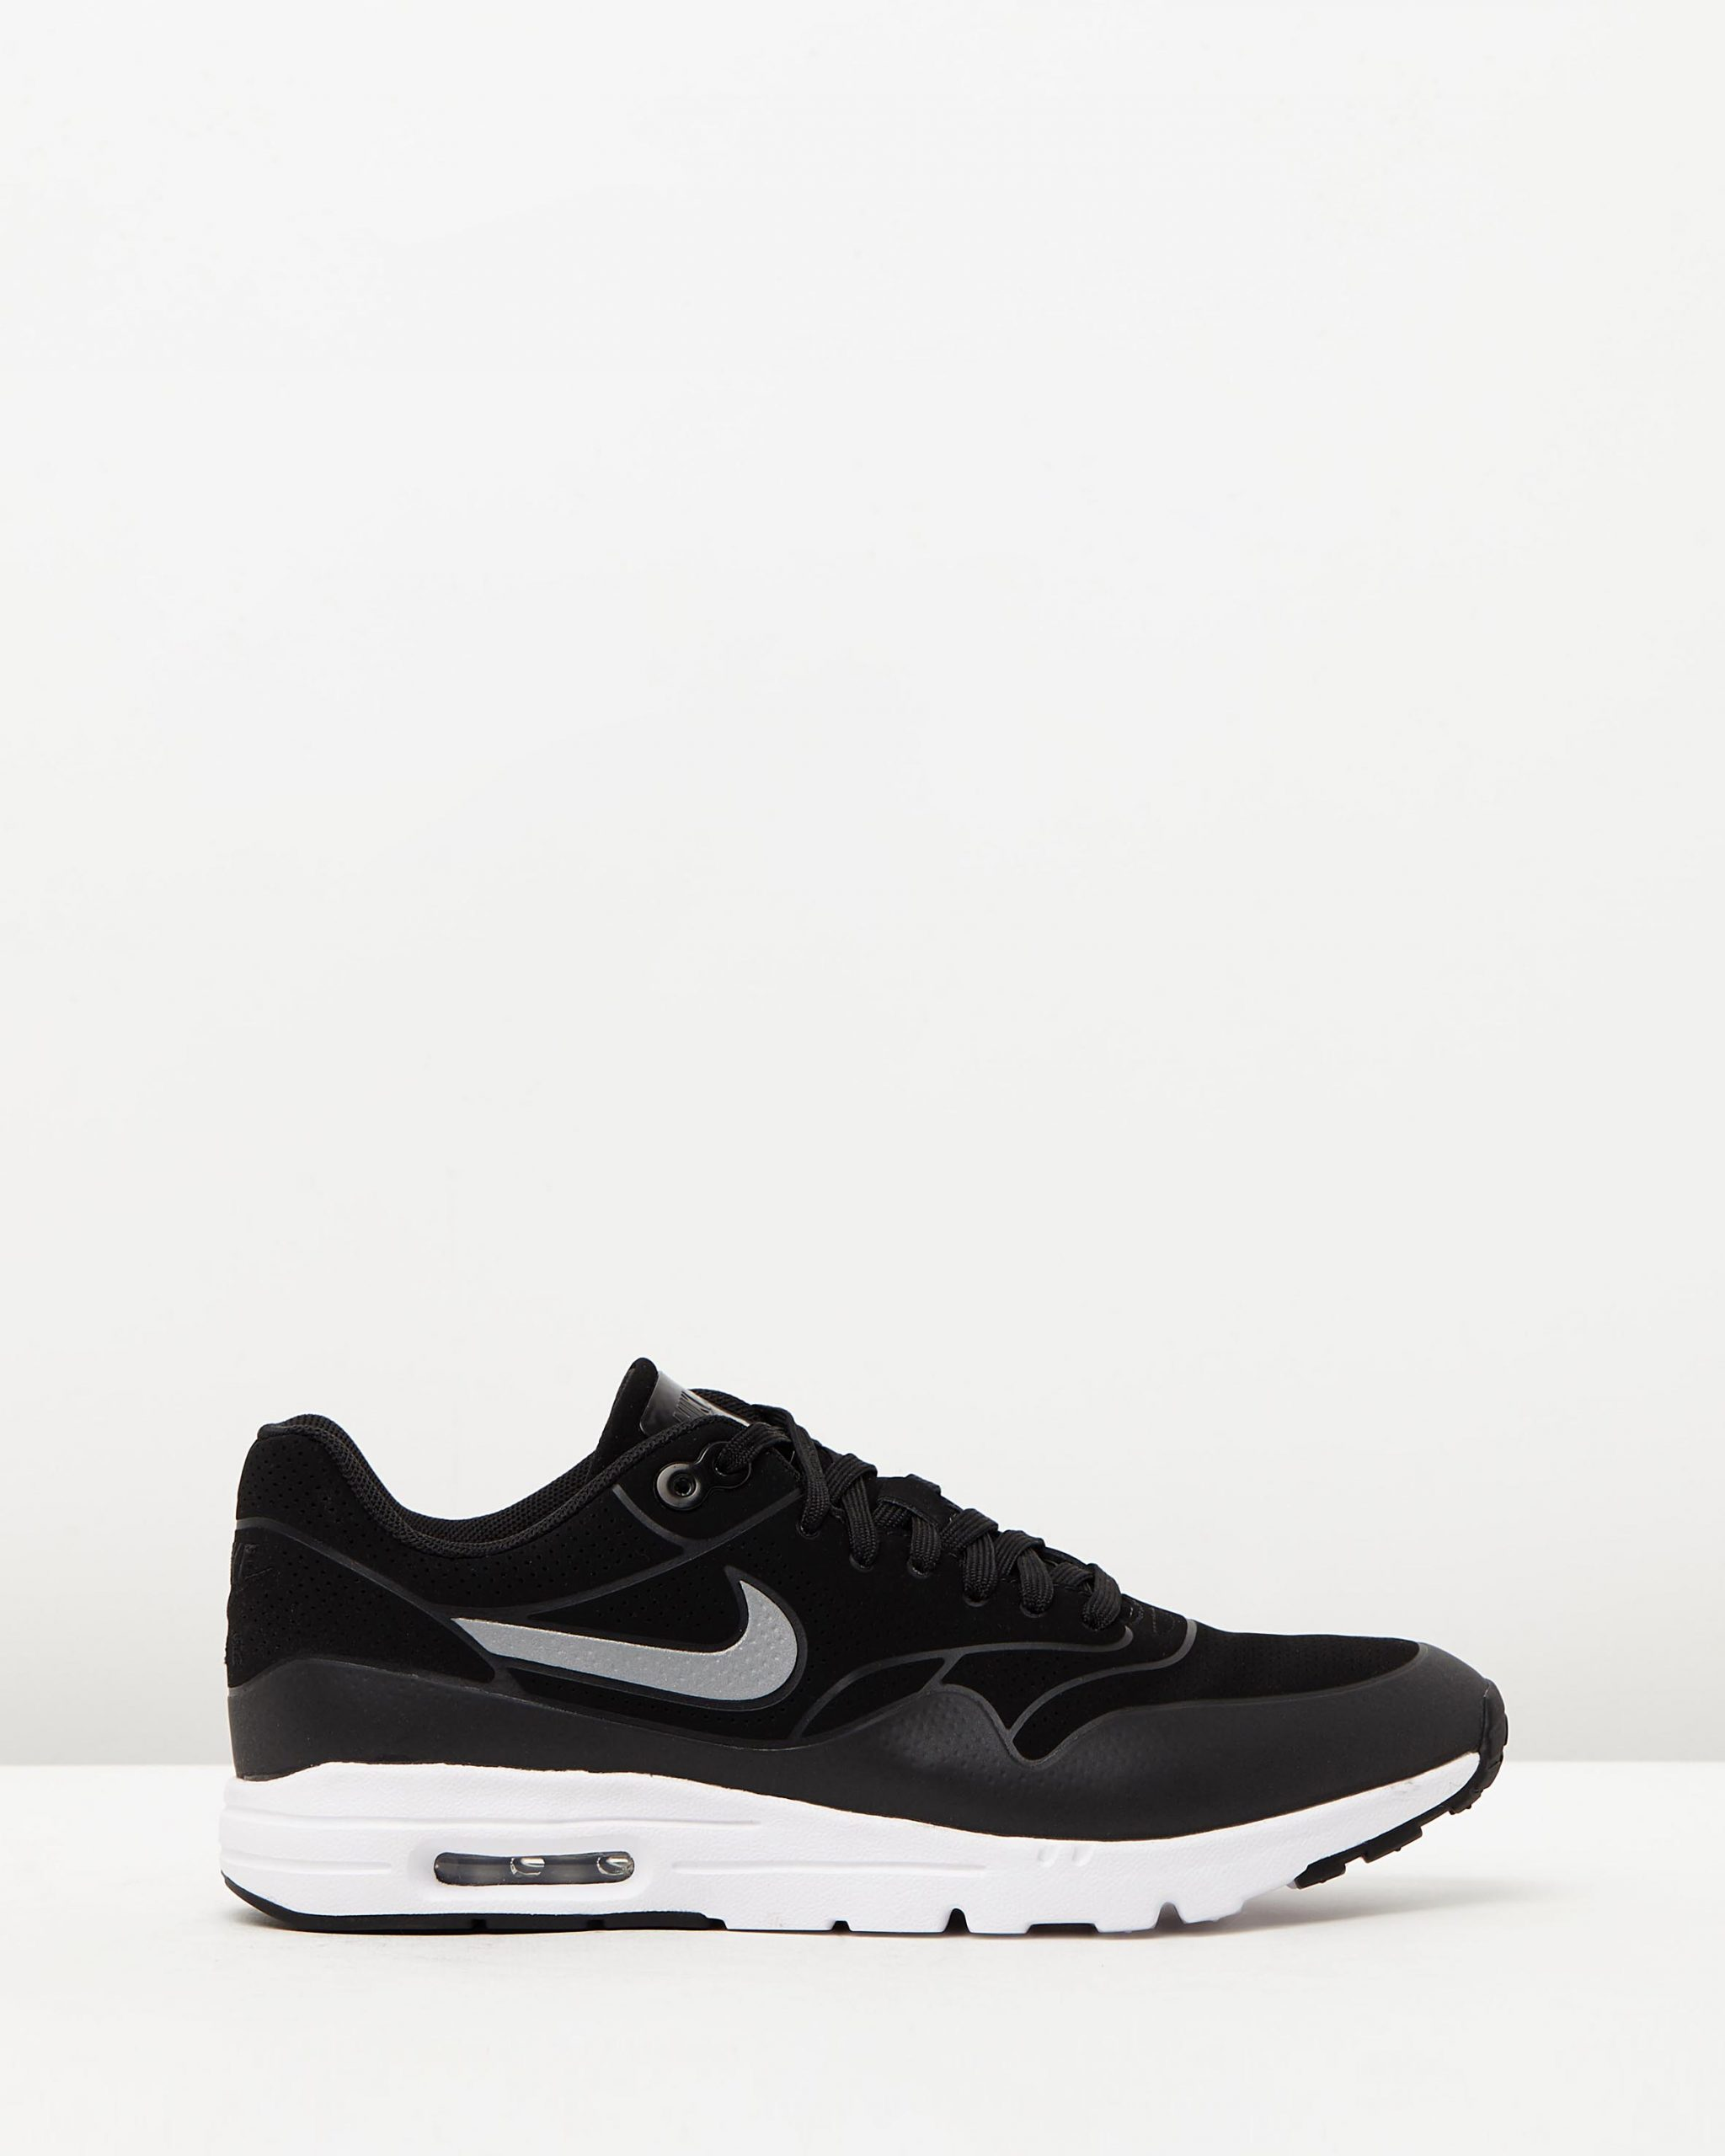 Women's Nike Air Max 1 Ultra Moire Black